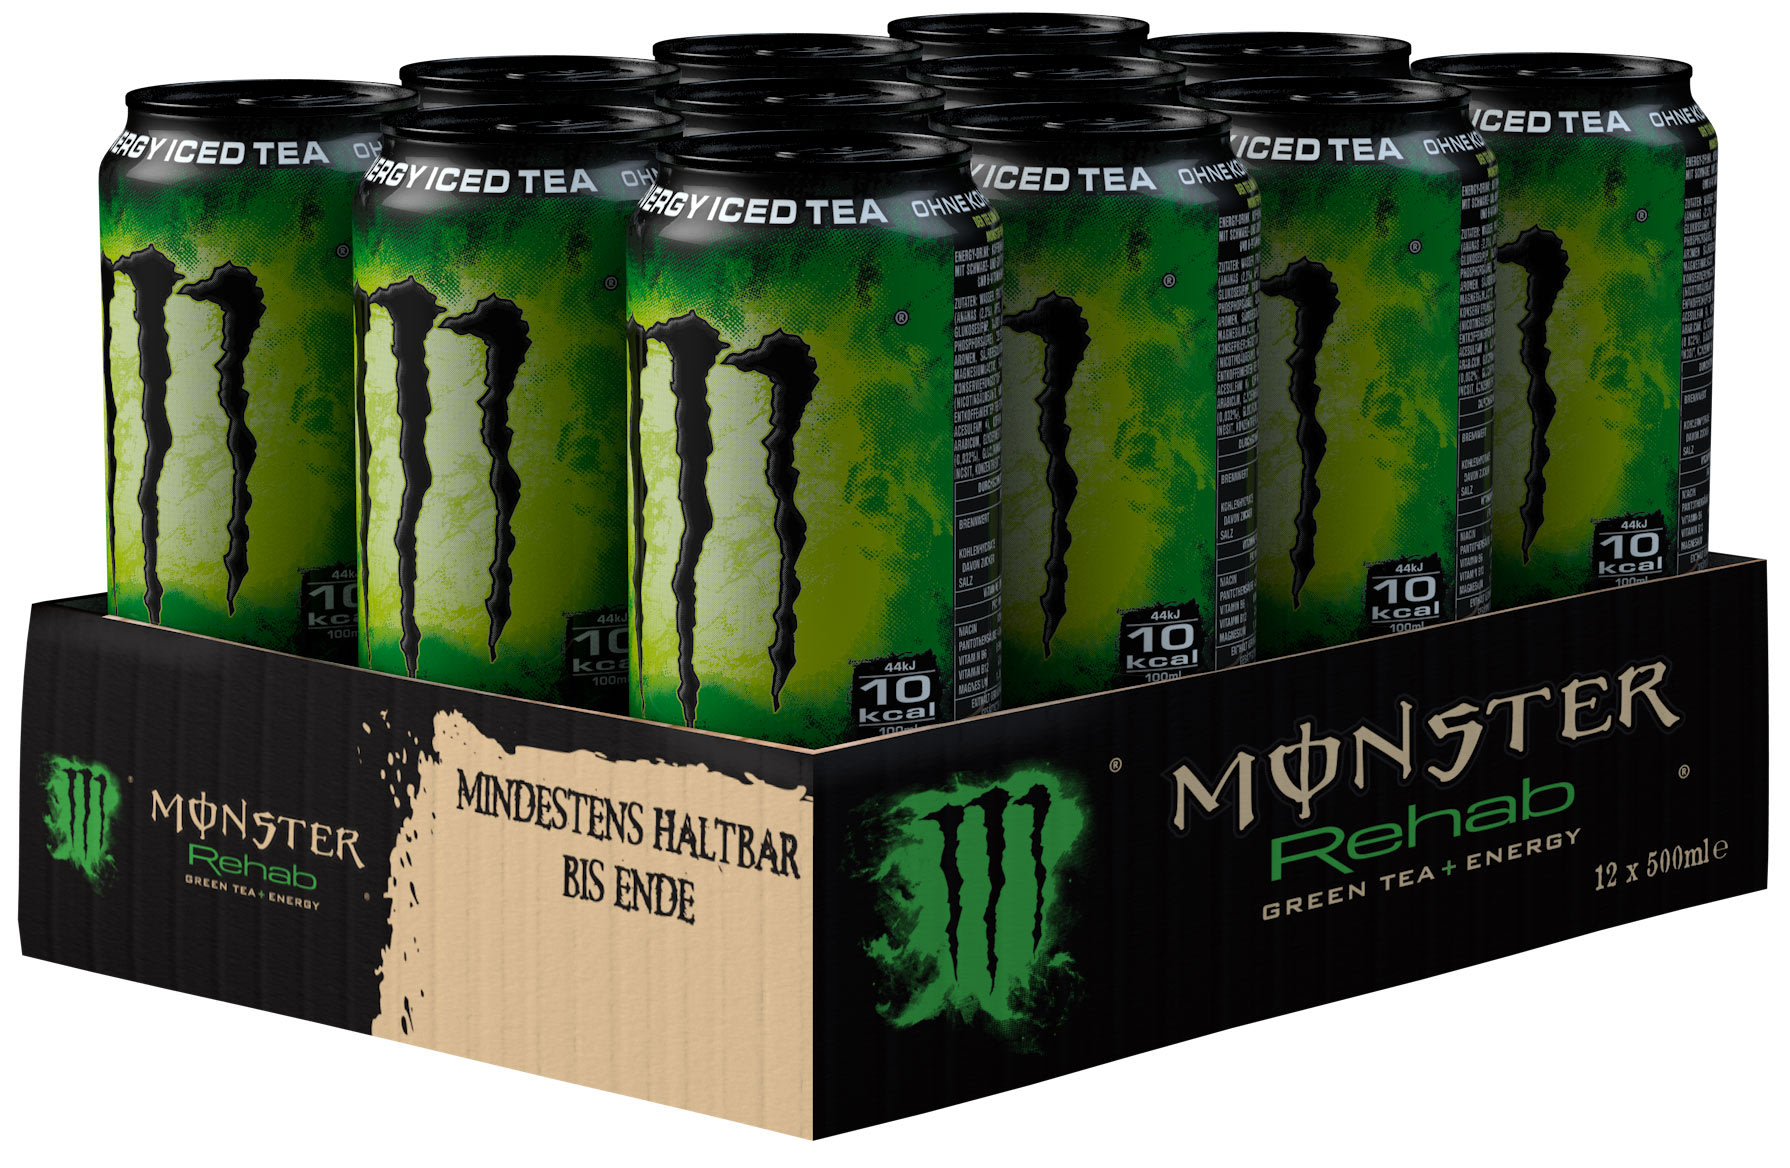 Monster Rehab Green Tea + Energy Karton 12 x 0,5 l Dose Einweg